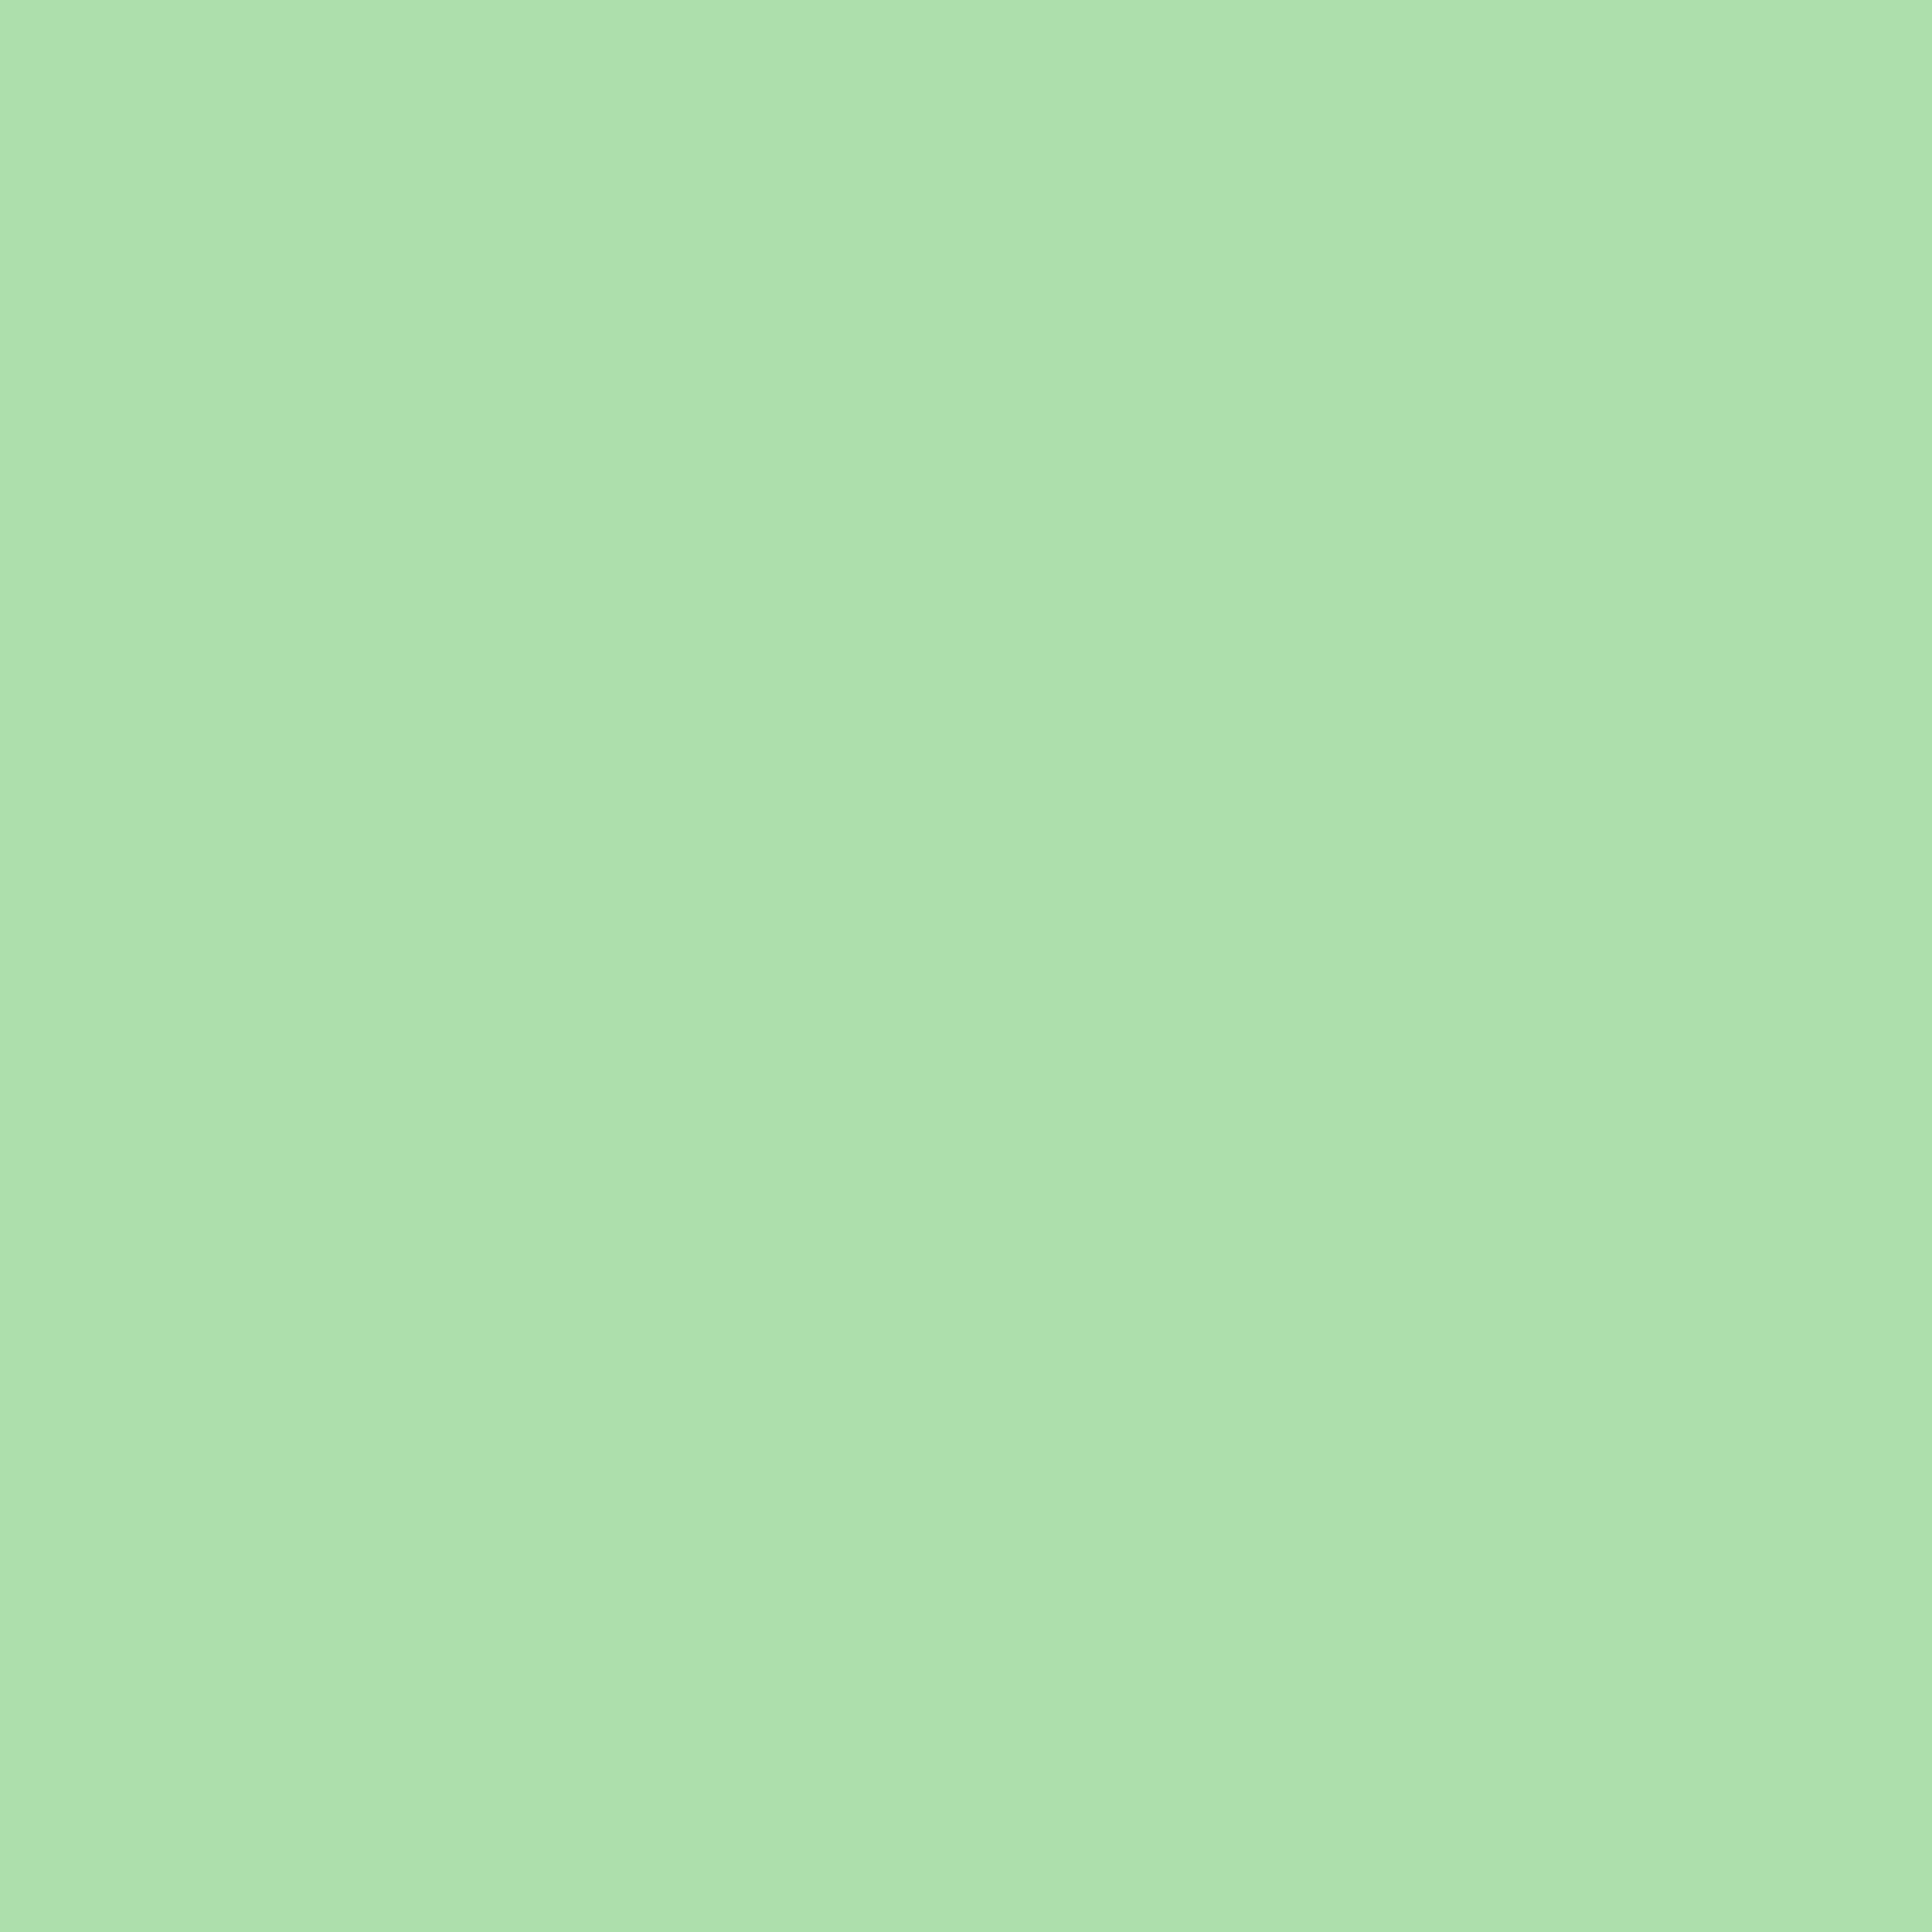 2732x2732 Light Moss Green Solid Color Background